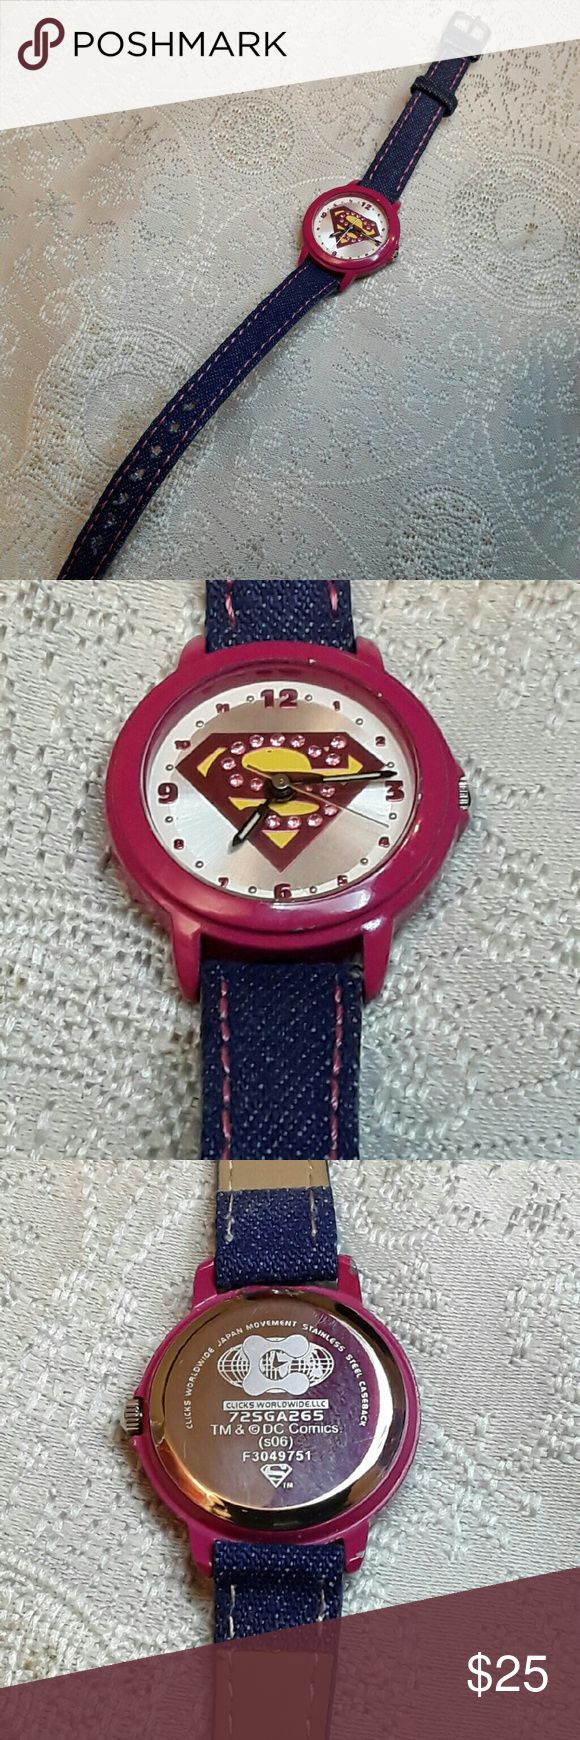 DC Collectible Supergirl/Superman watch Parting with my Supergirl watch. Used and in good condition. DC/Clicks Worldwide   Accessories Watches